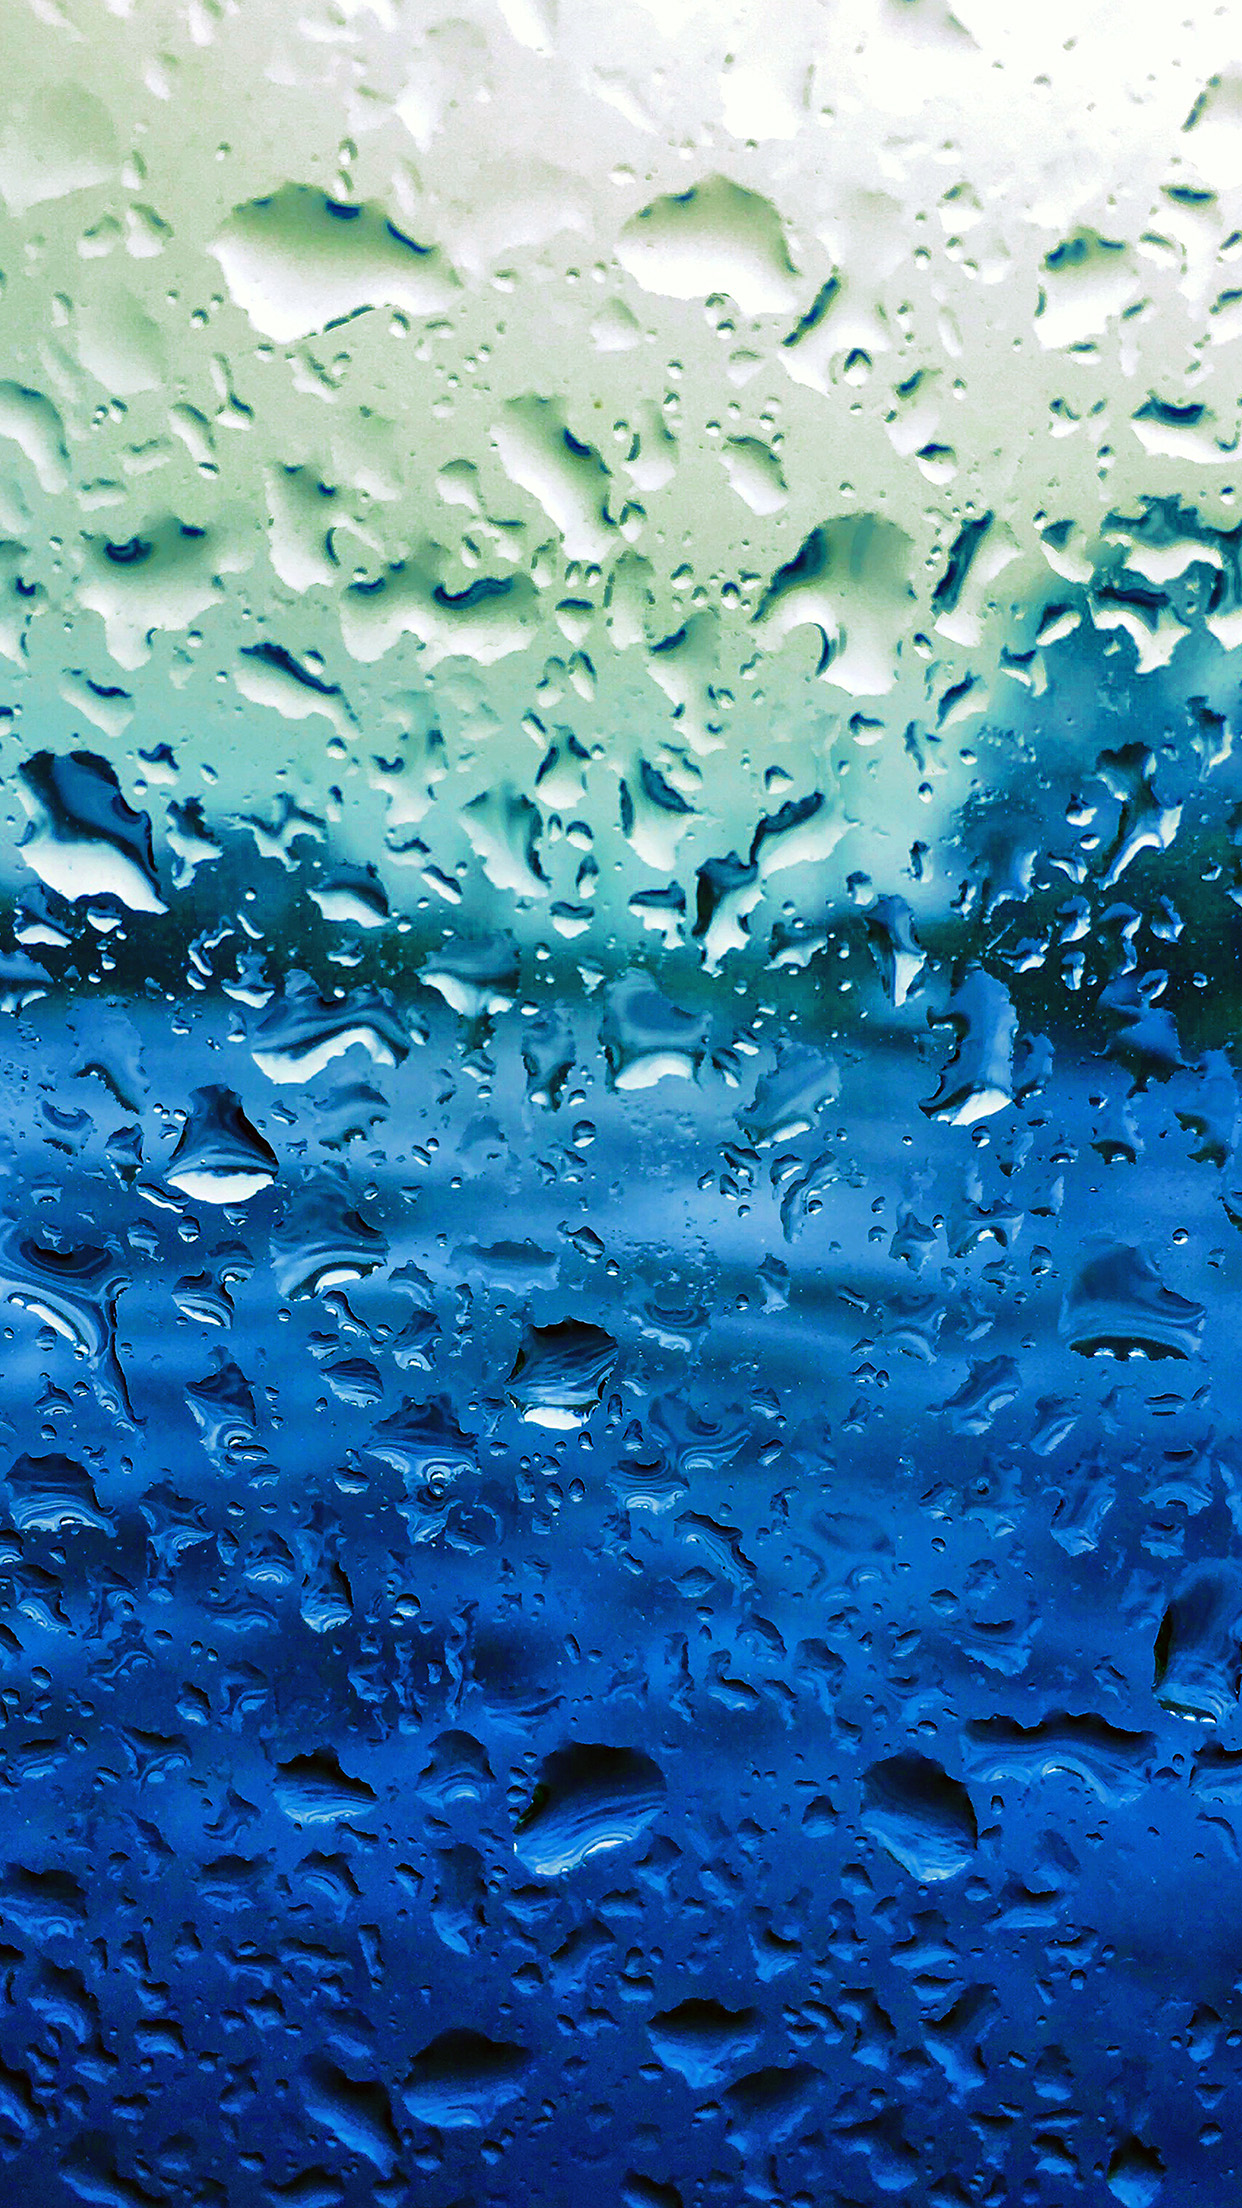 Cute Fall Hd Wallpaper Papers Co Iphone Wallpaper Vr69 Rain Drop Window Blue